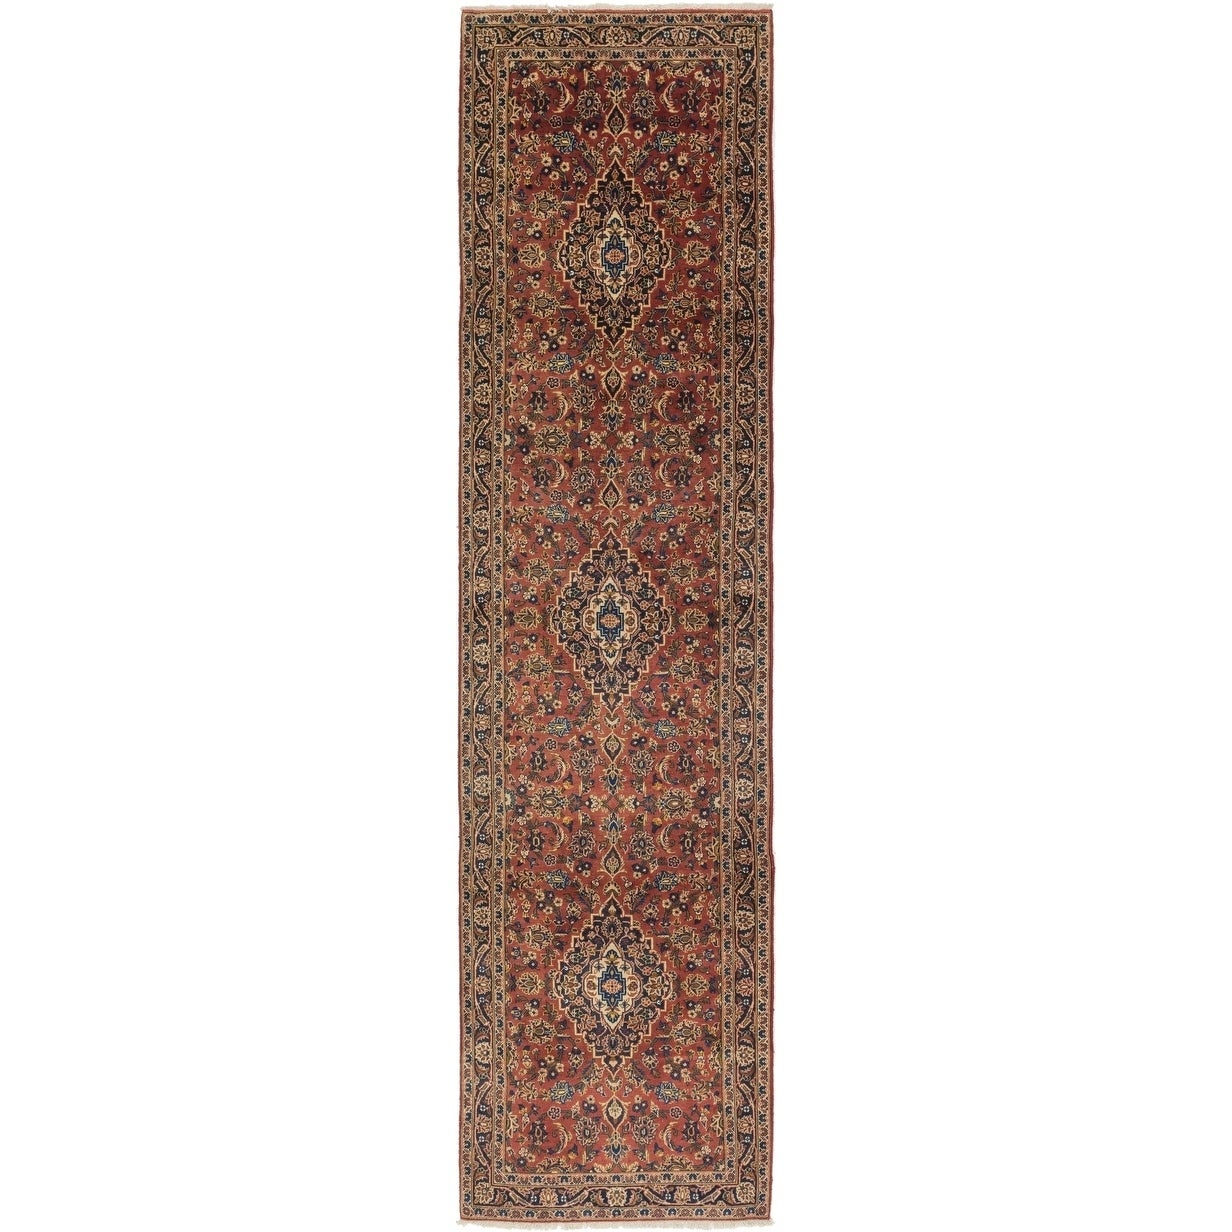 Hand Knotted Kashan Wool Runner Rug - 3 5 x 13 10 (Red - 3 5 x 13 10)